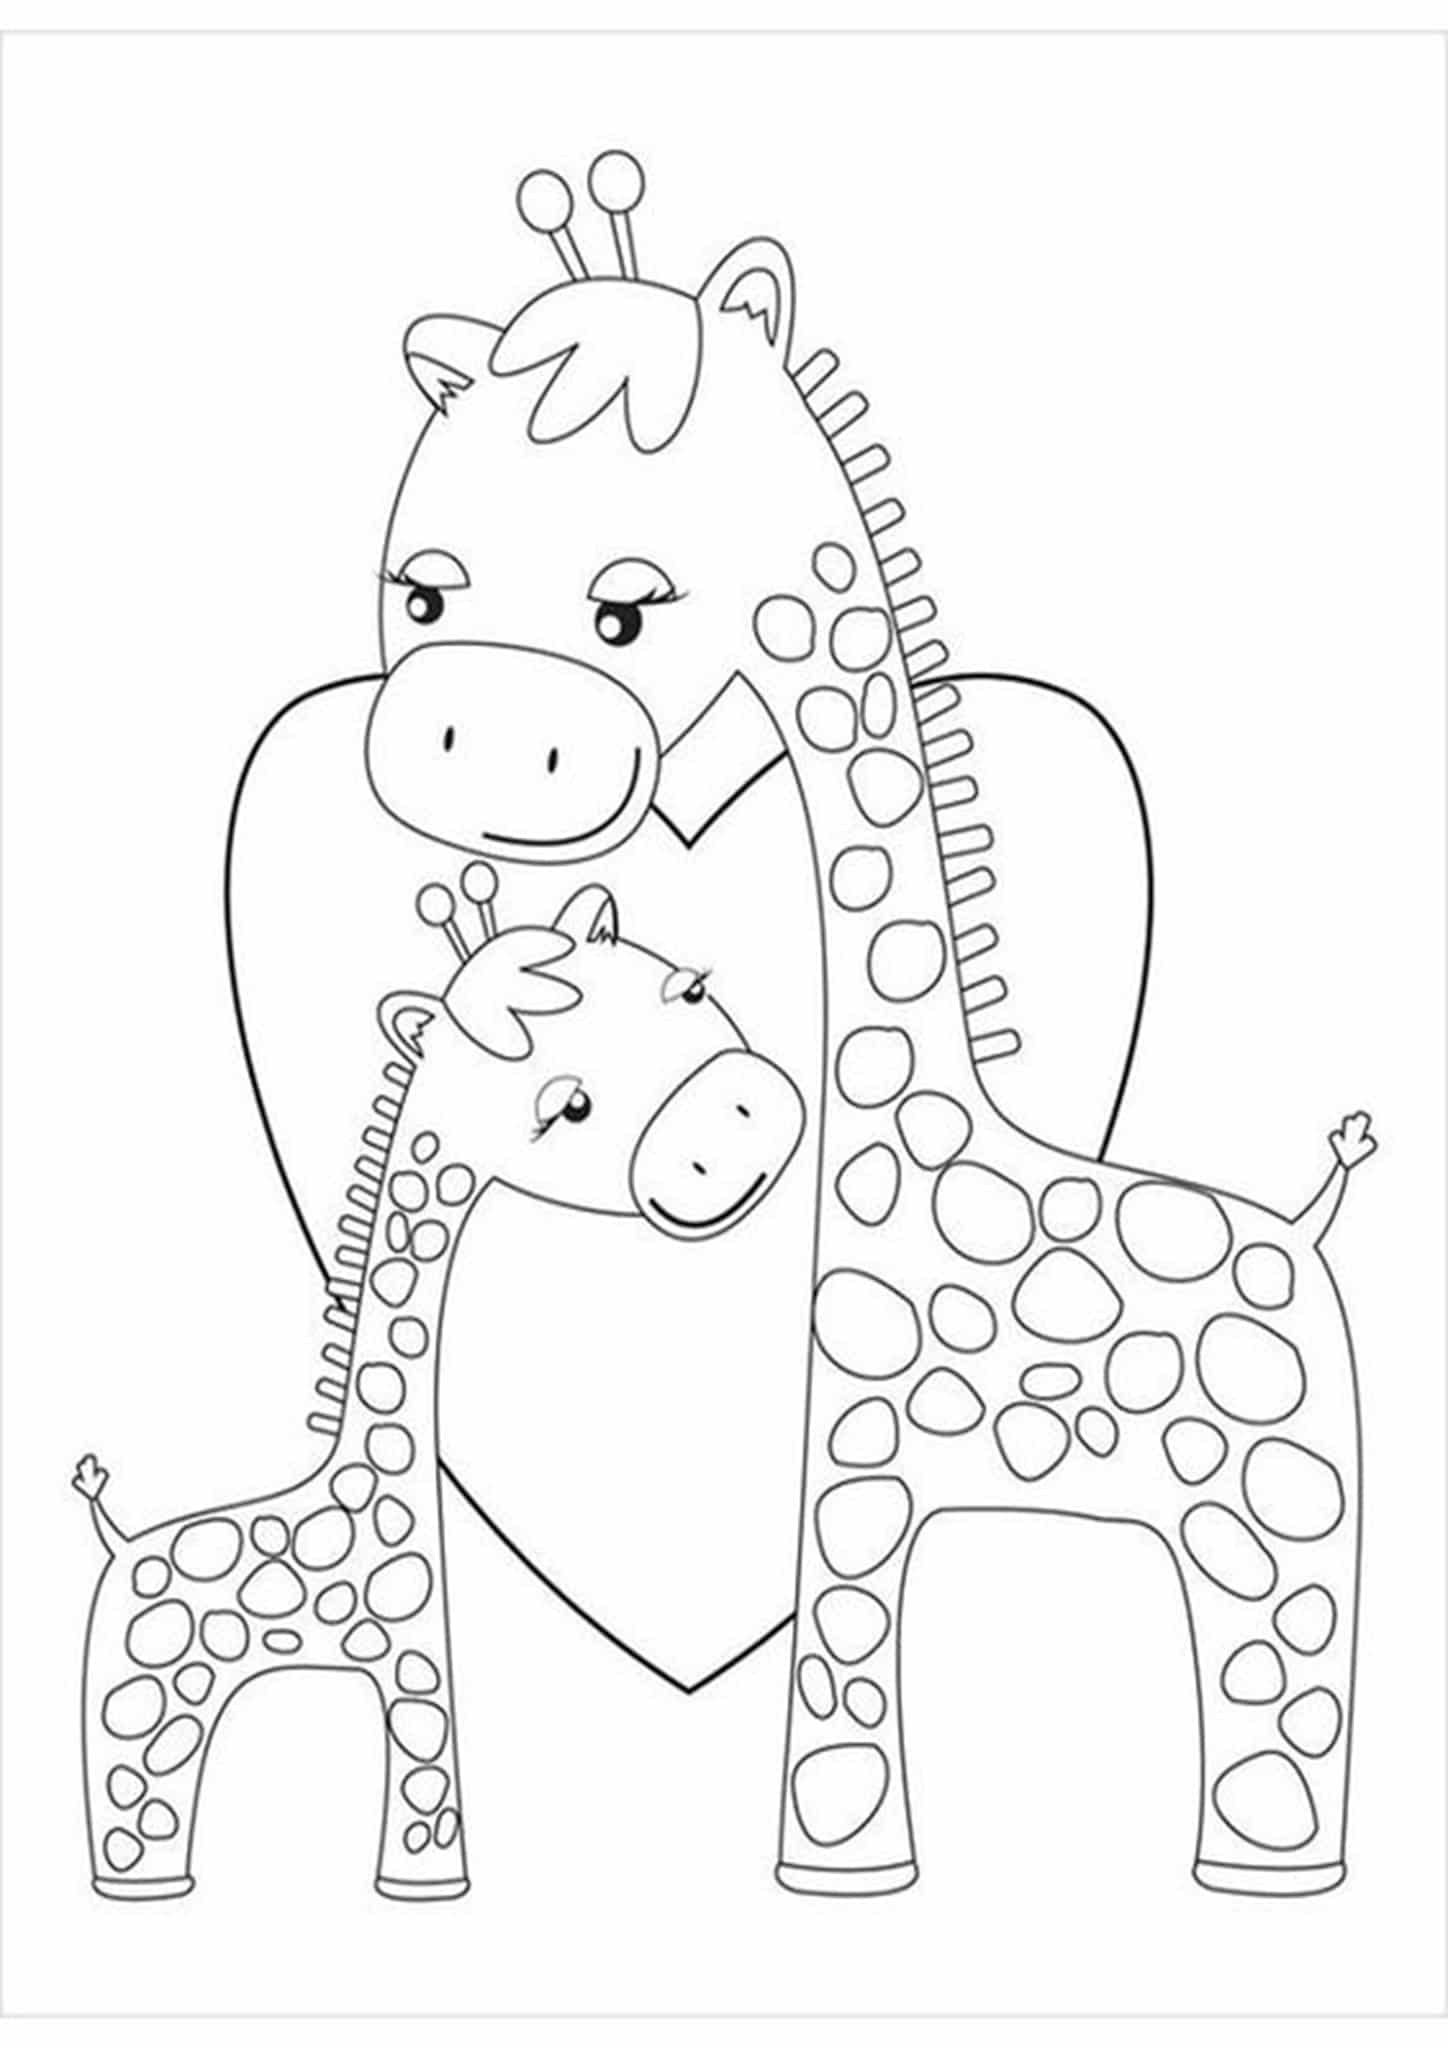 giraffe coloring image free easy to print giraffe coloring pages tulamama coloring image giraffe